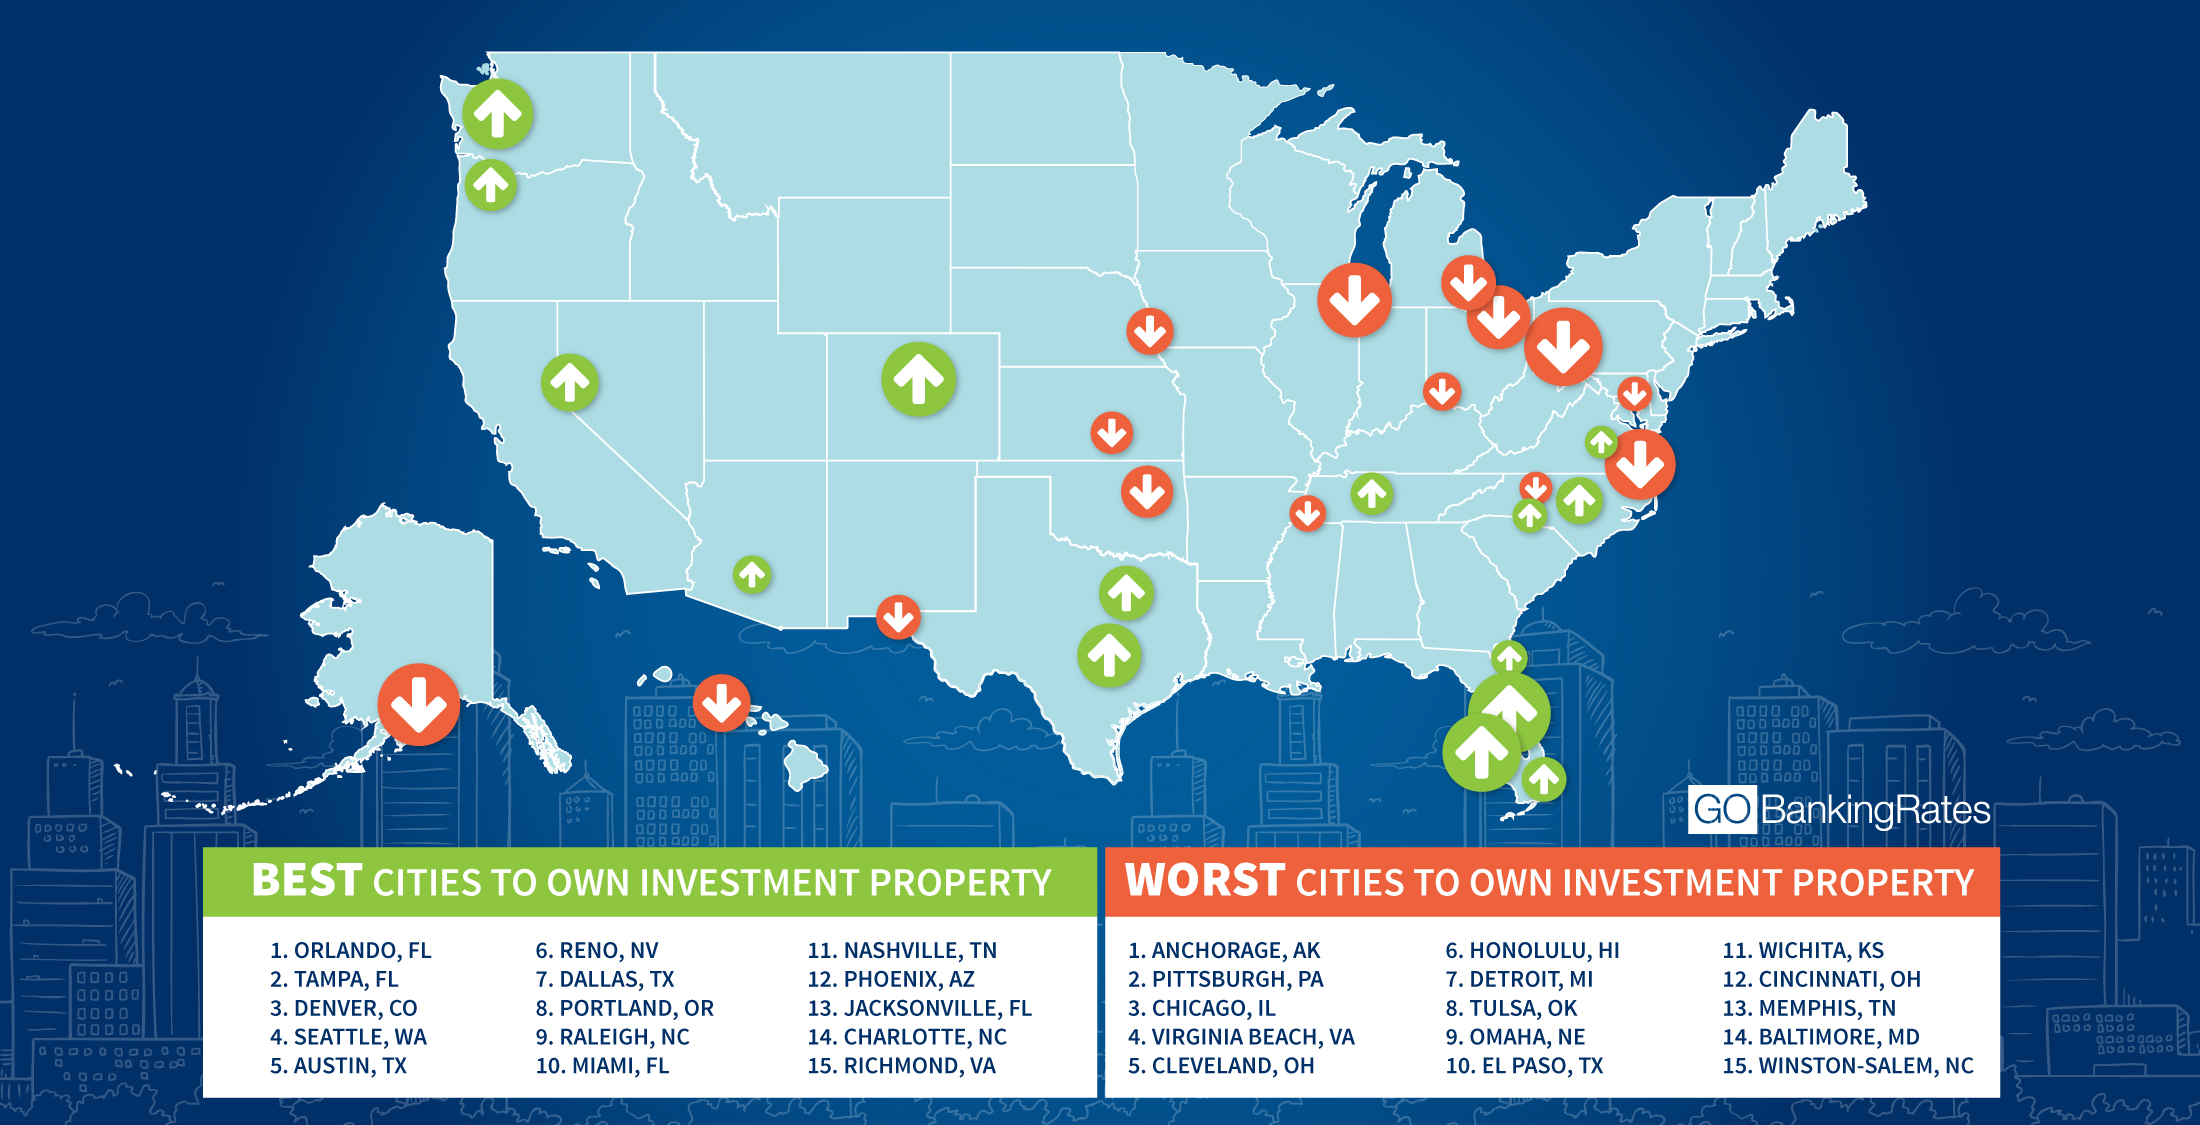 The Best and Worst Cities to Own Investment Property